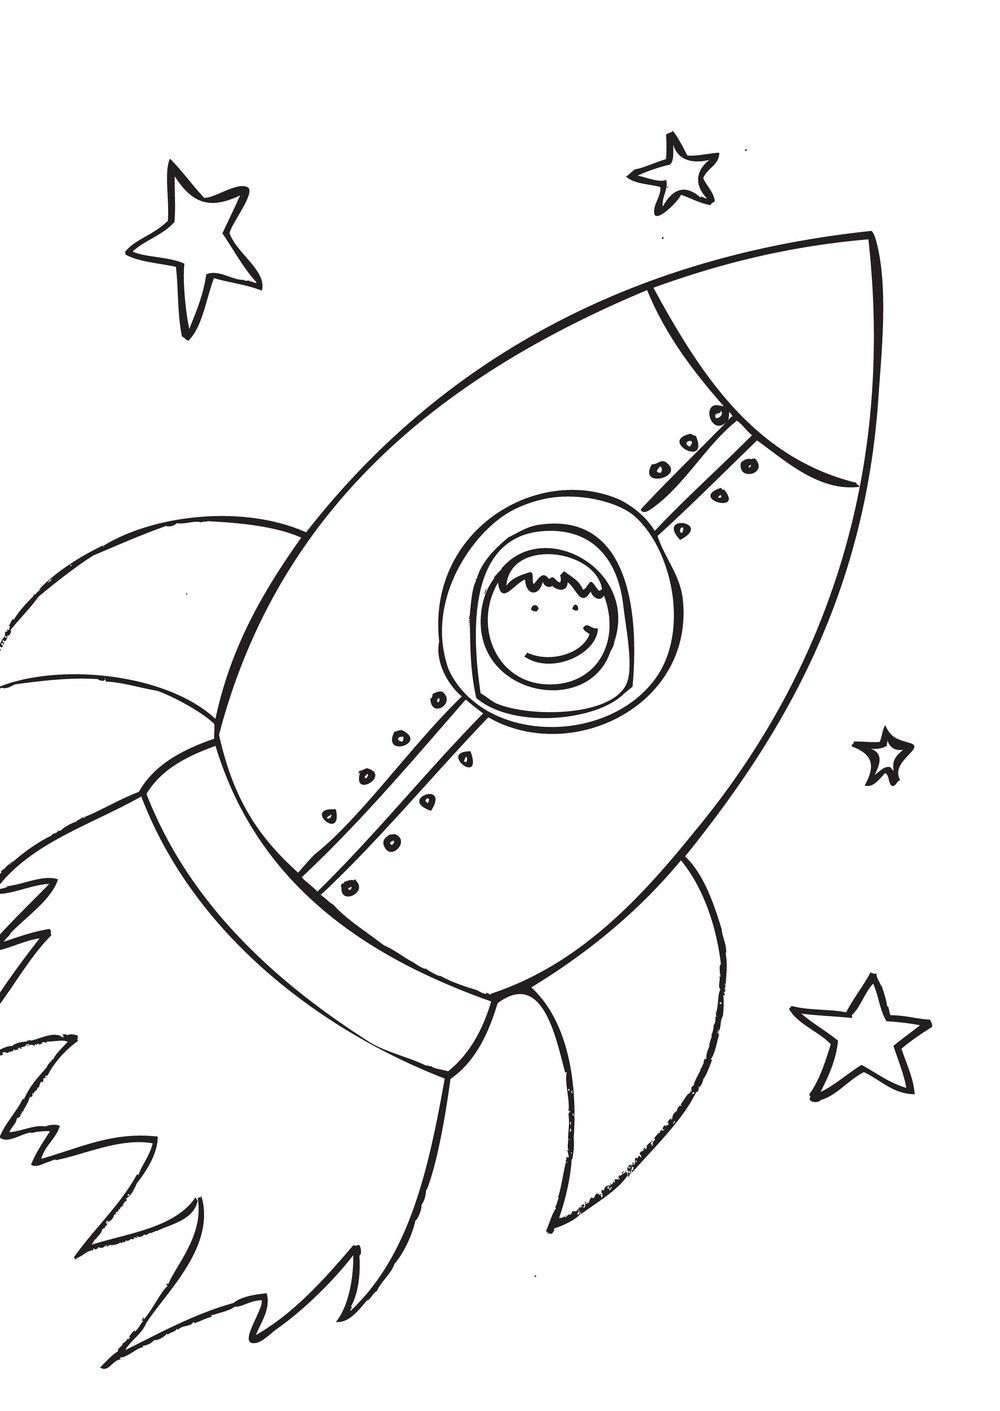 space rocket coloring pages - HD 1000×1411